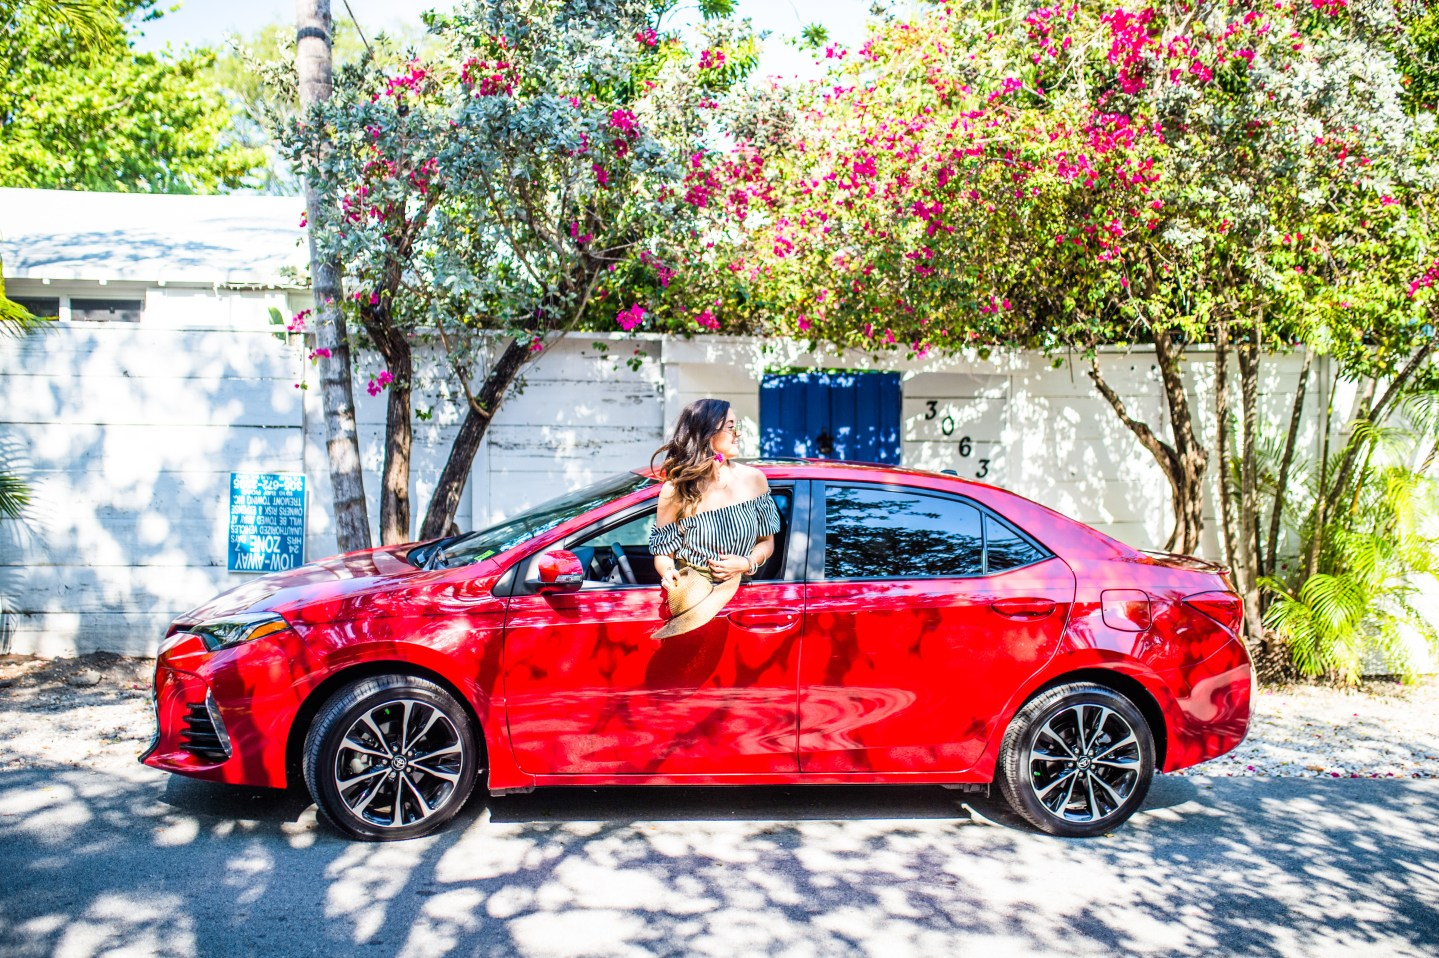 Touring Miami's Coconut Grove Neighborhood with Toyota